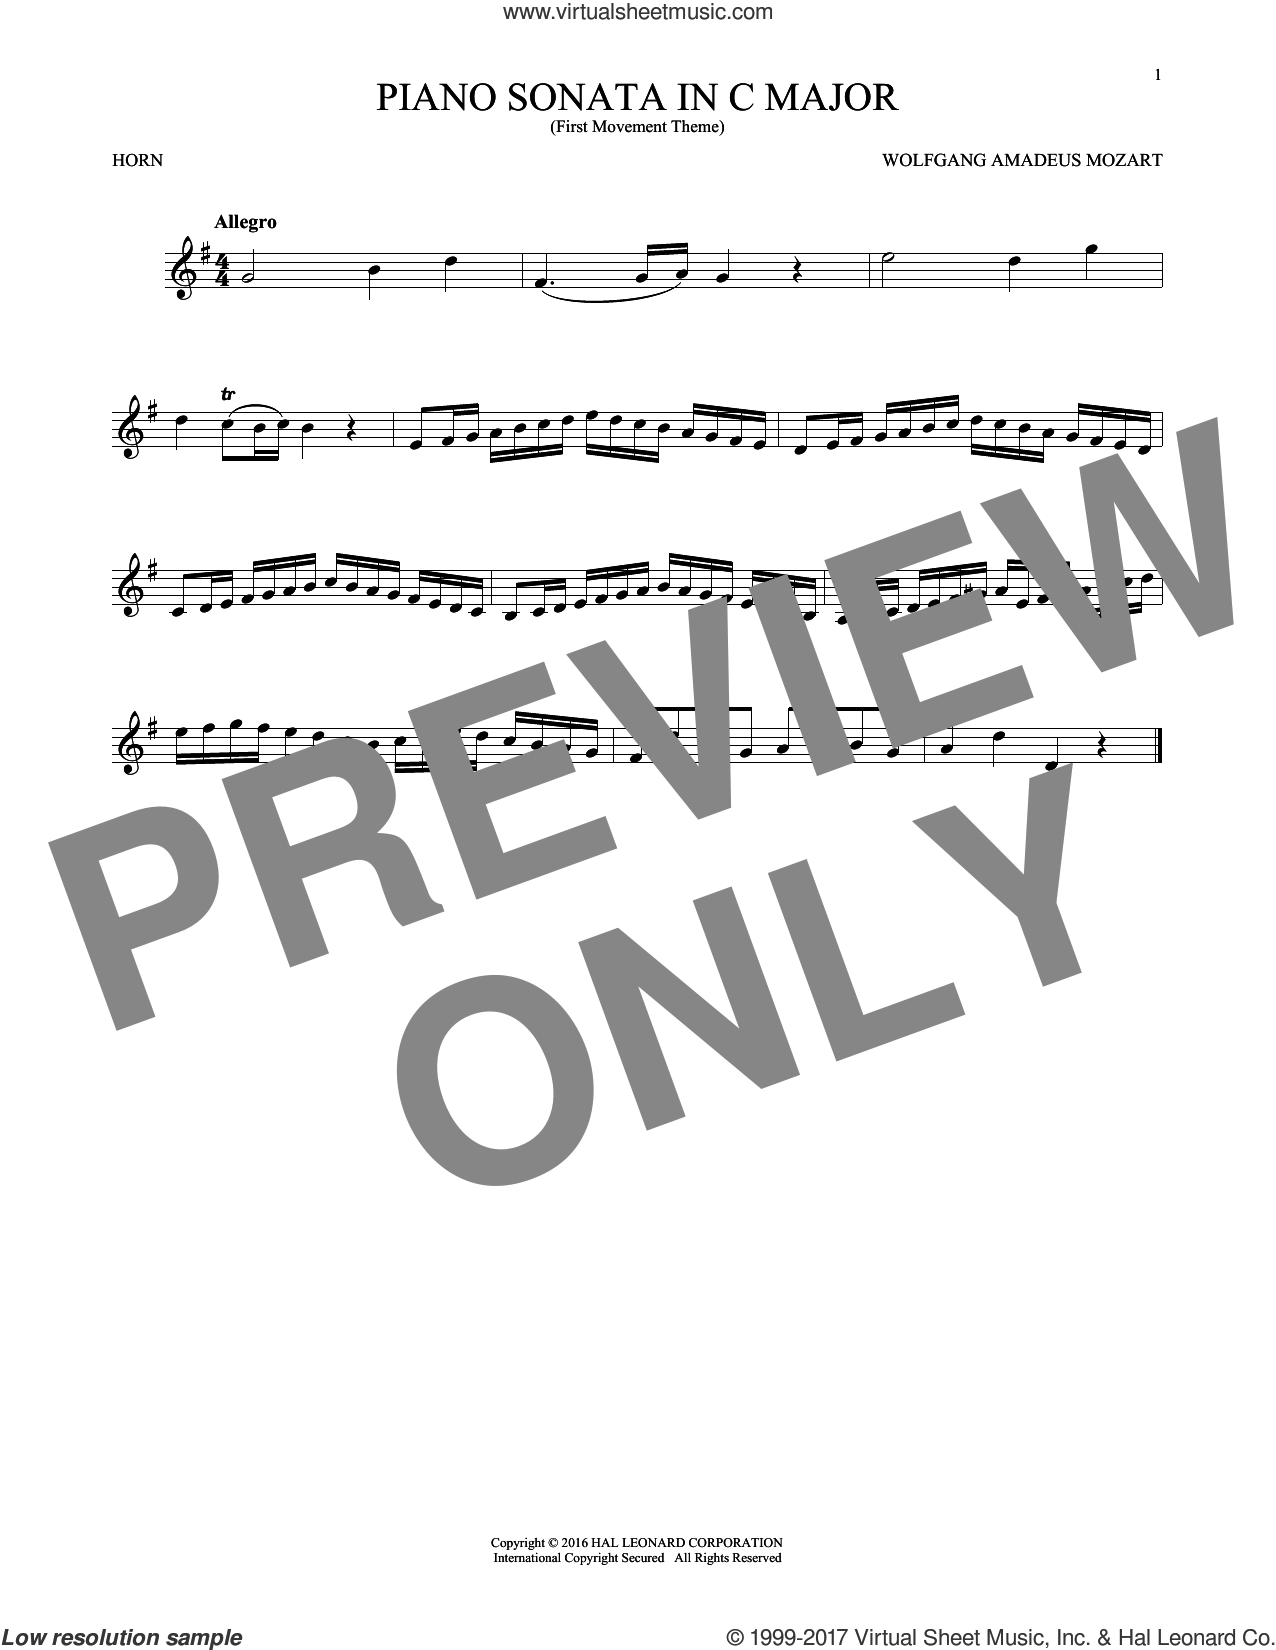 Piano Sonata In C Major sheet music for horn solo by Wolfgang Amadeus Mozart, classical score, intermediate skill level